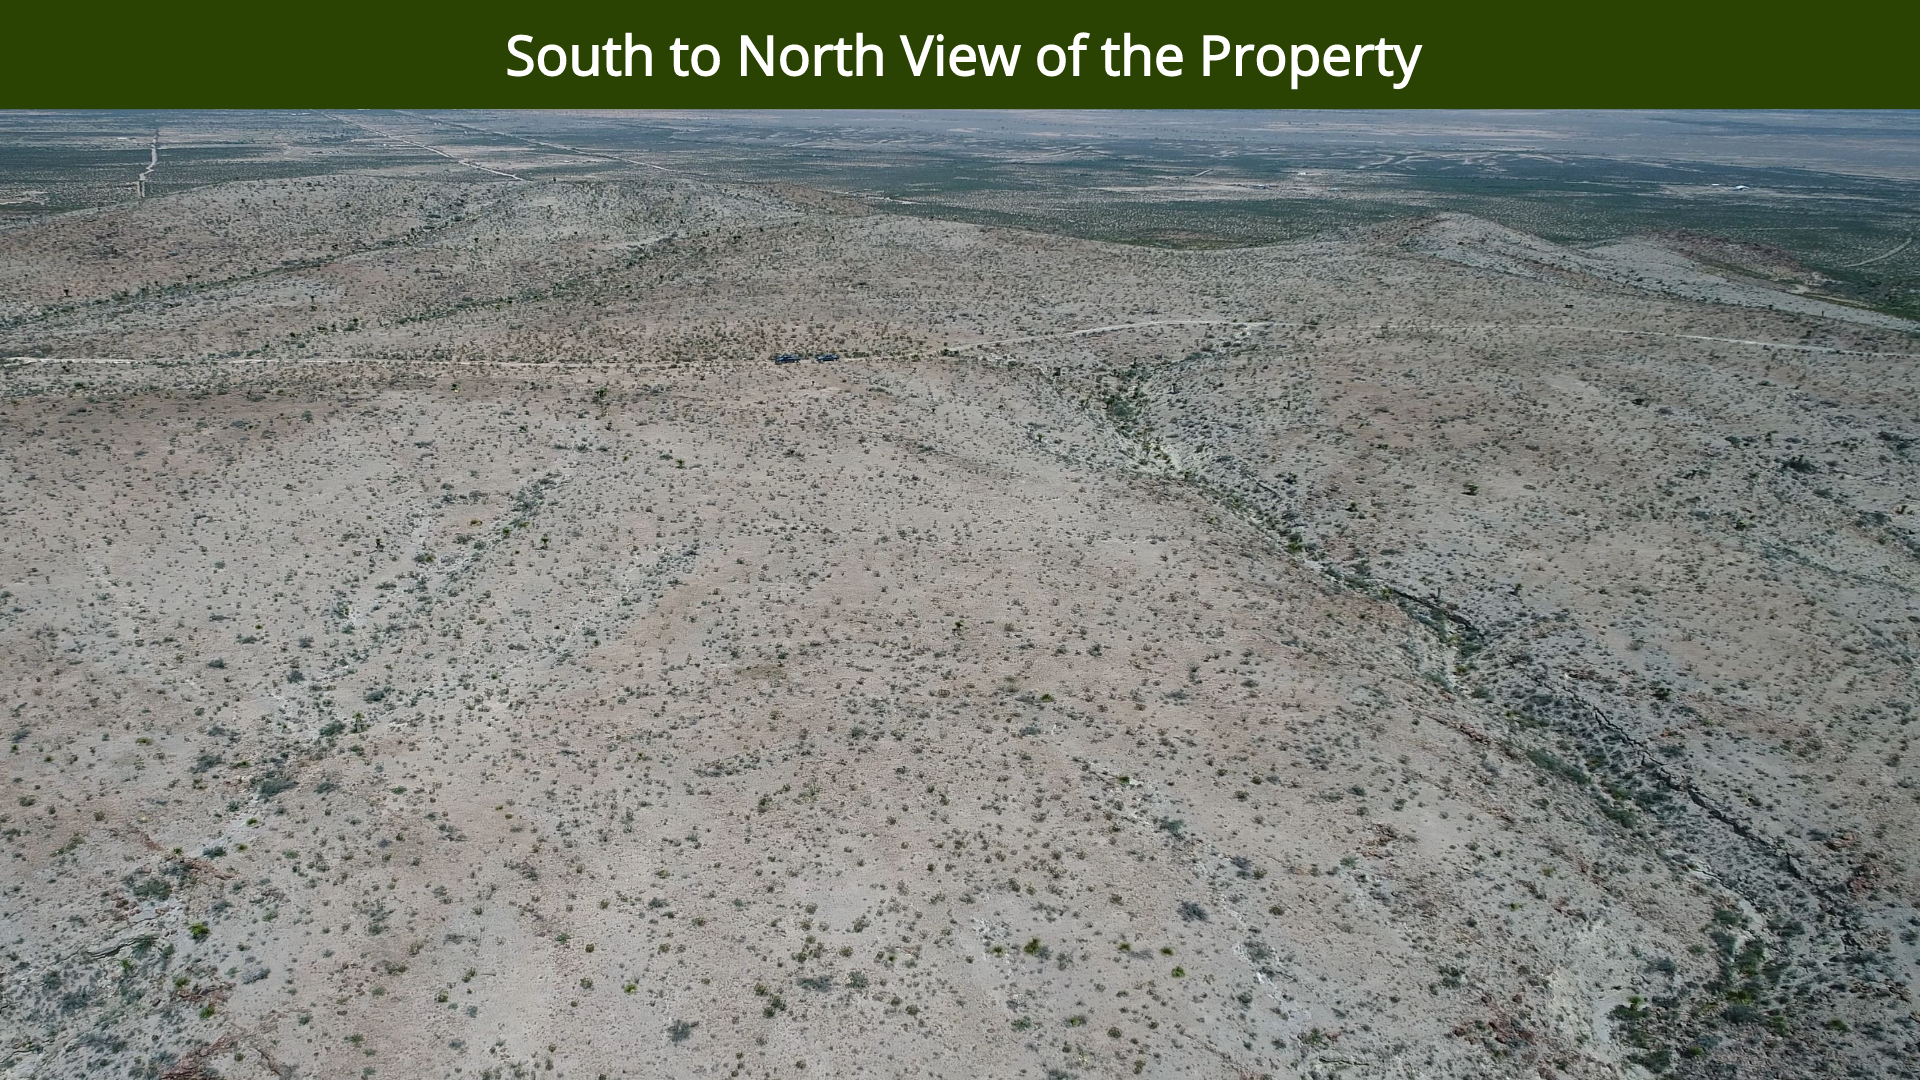 South to North View of the Property